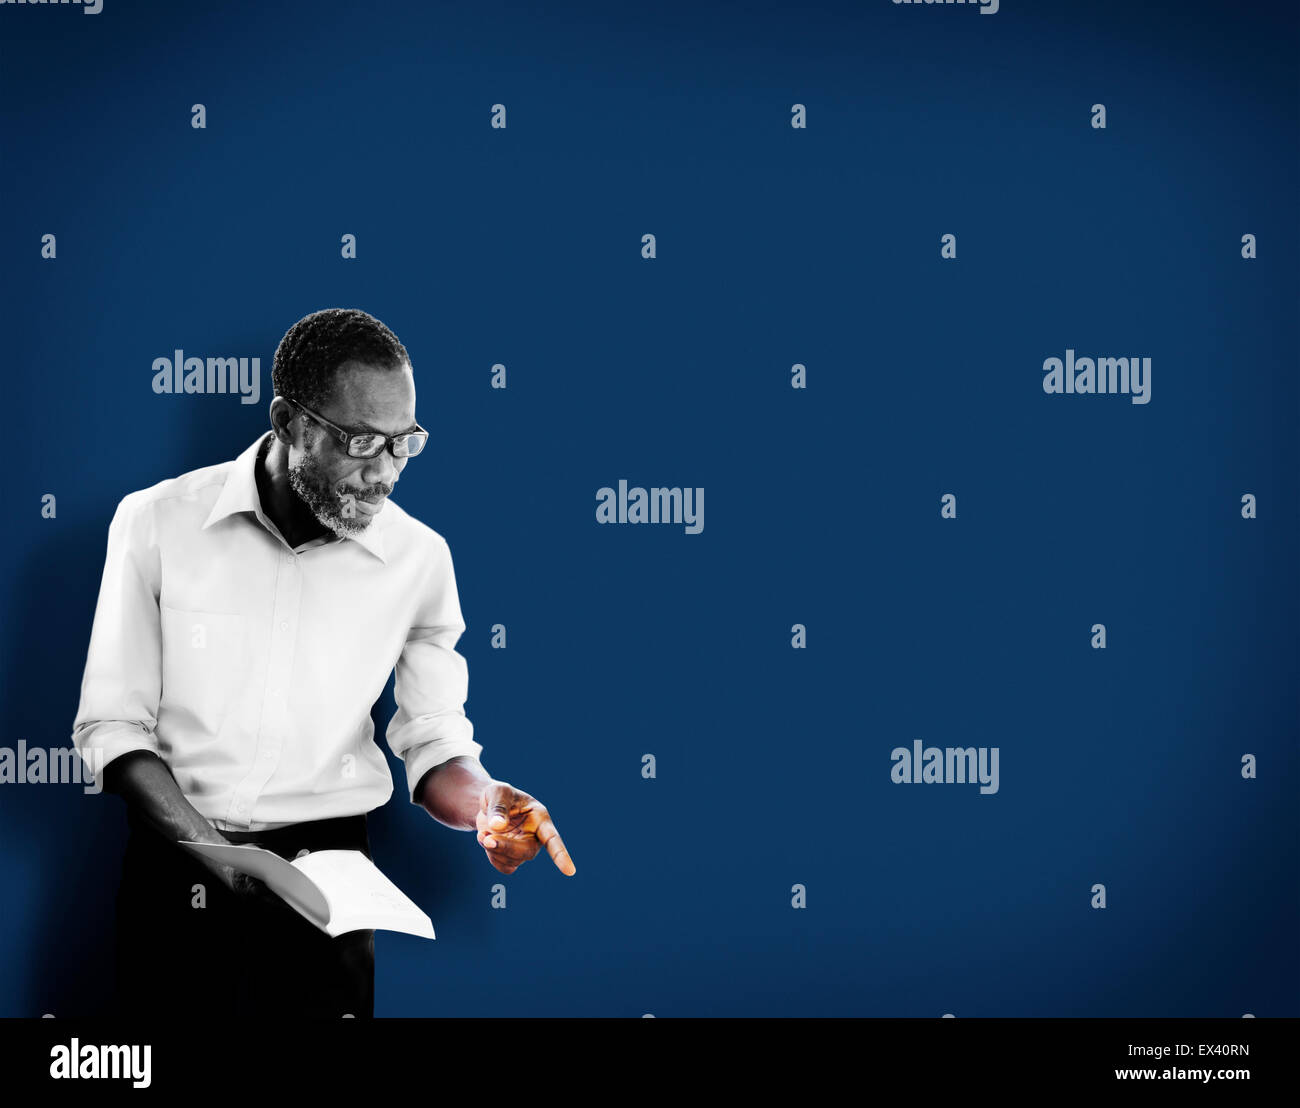 Professional Occupation Career Job Expertise Concept - Stock Image